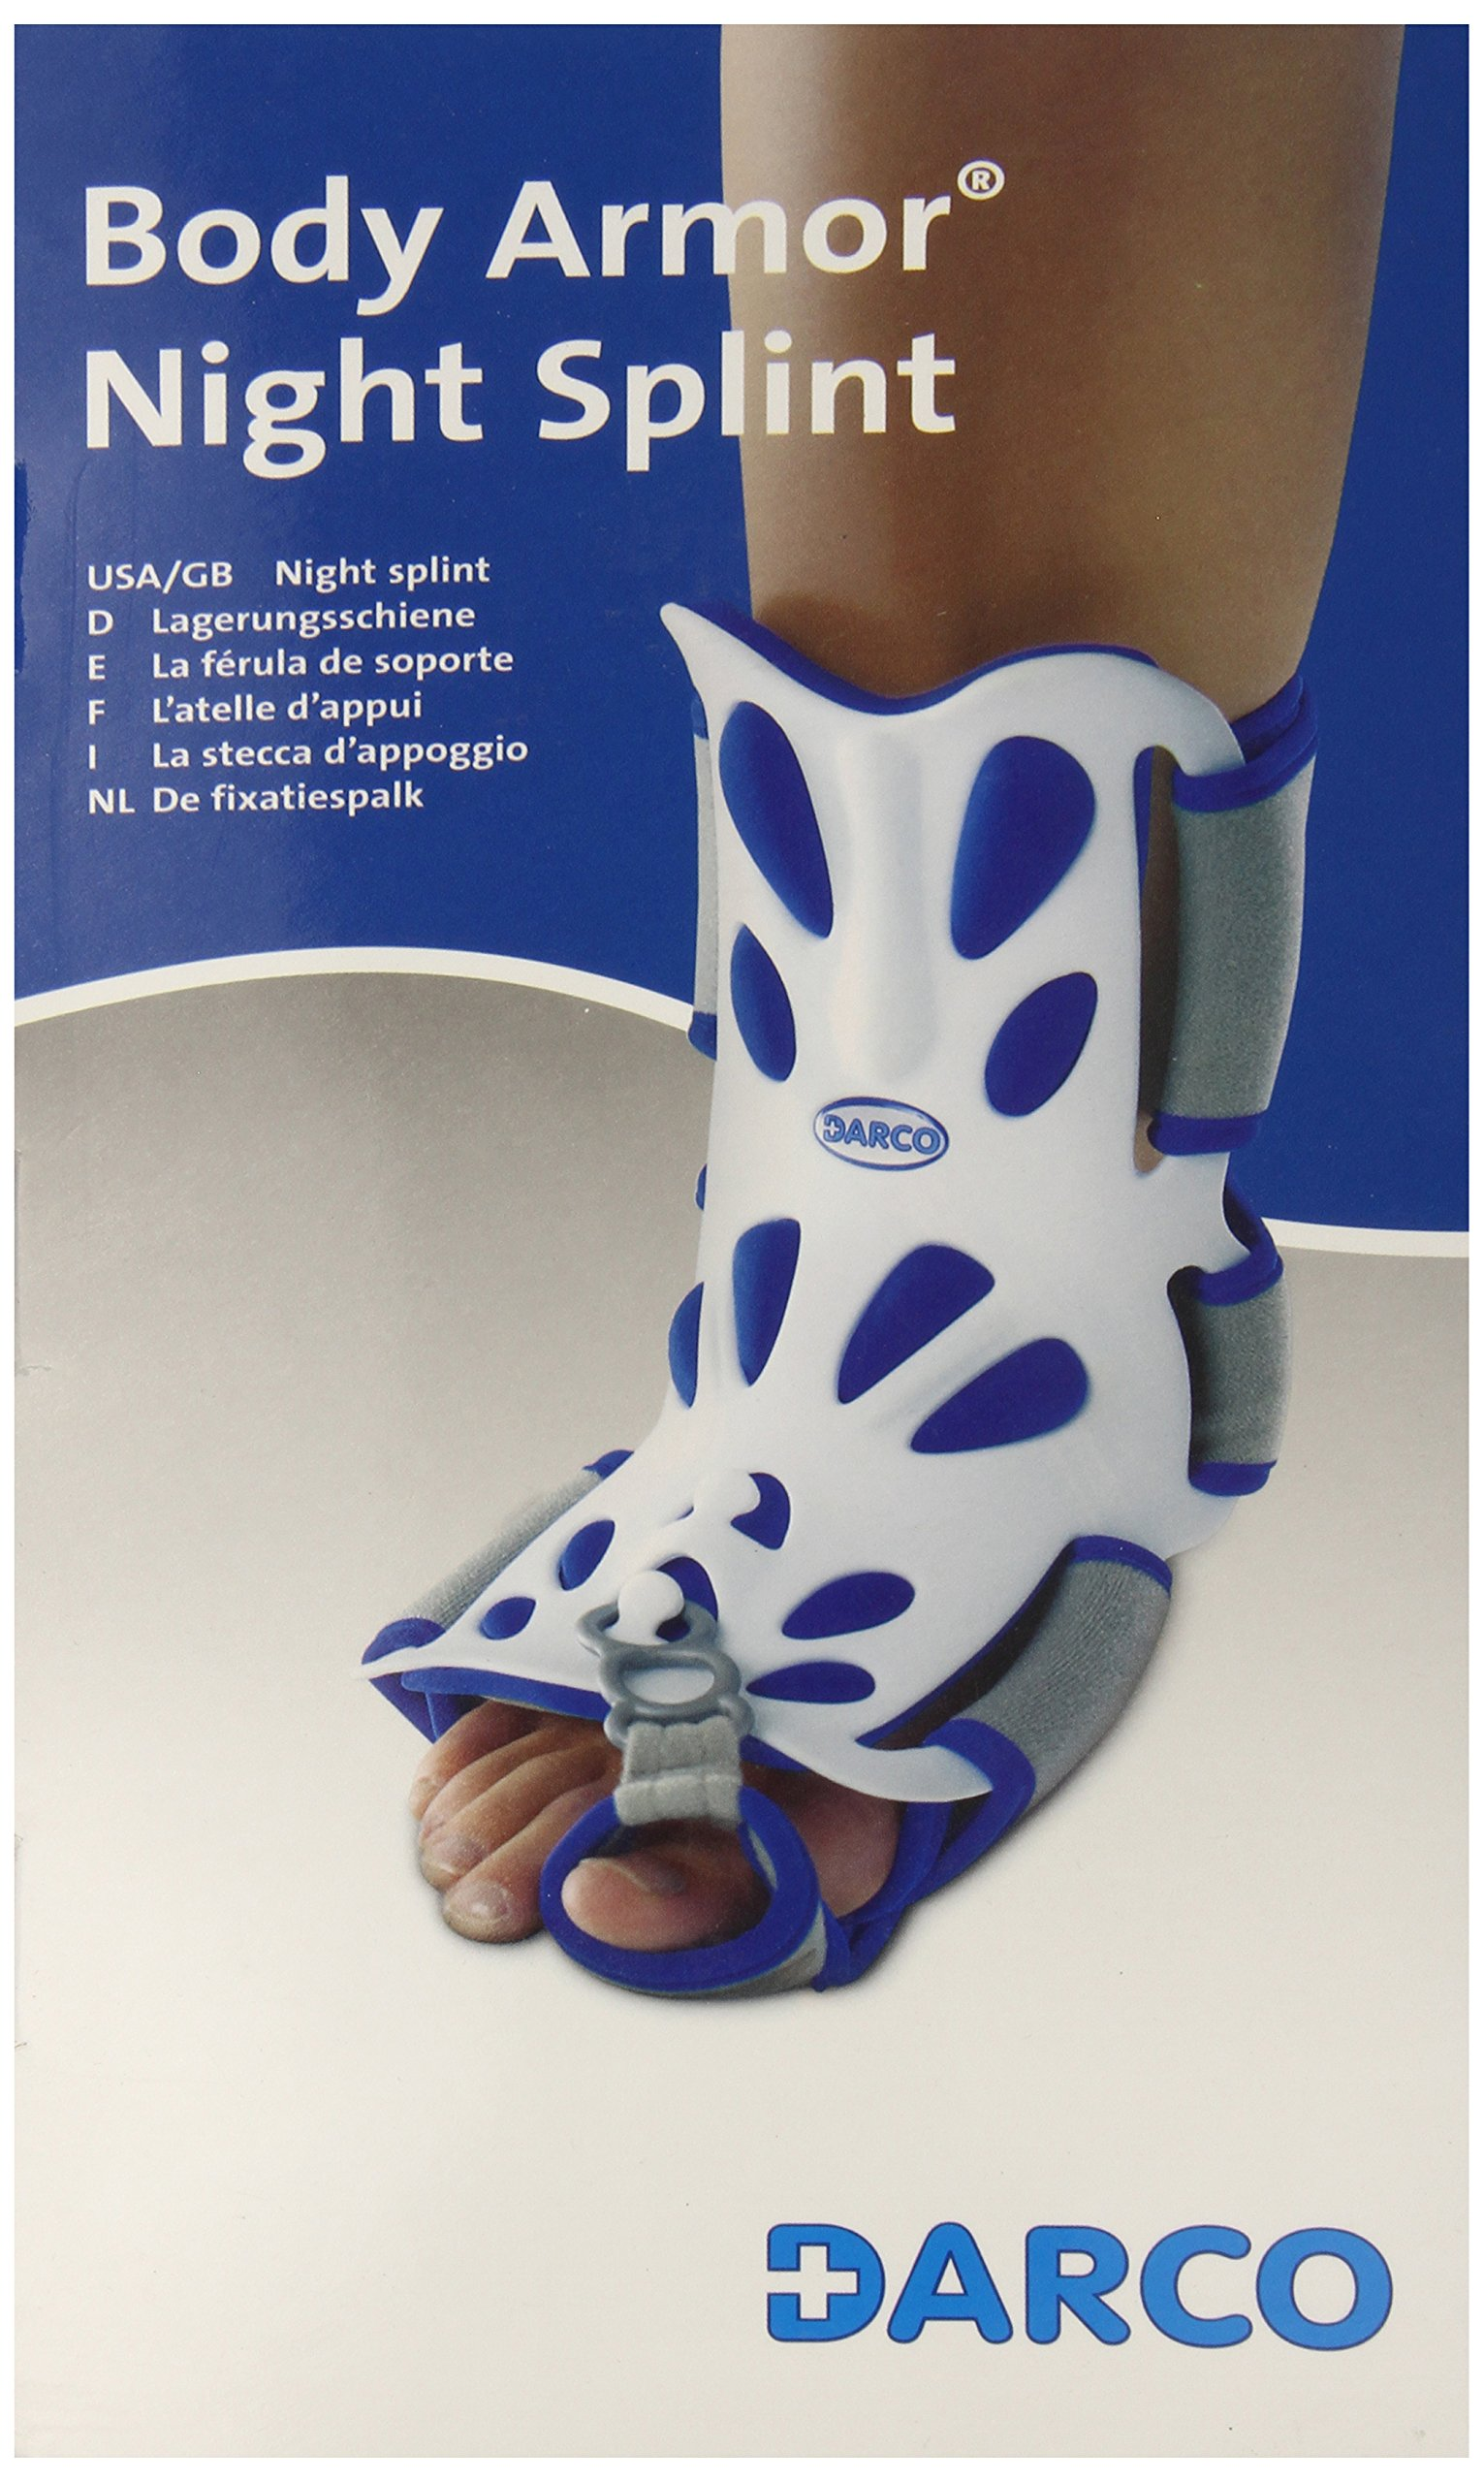 Darco Body Armor Night Splint by Darco